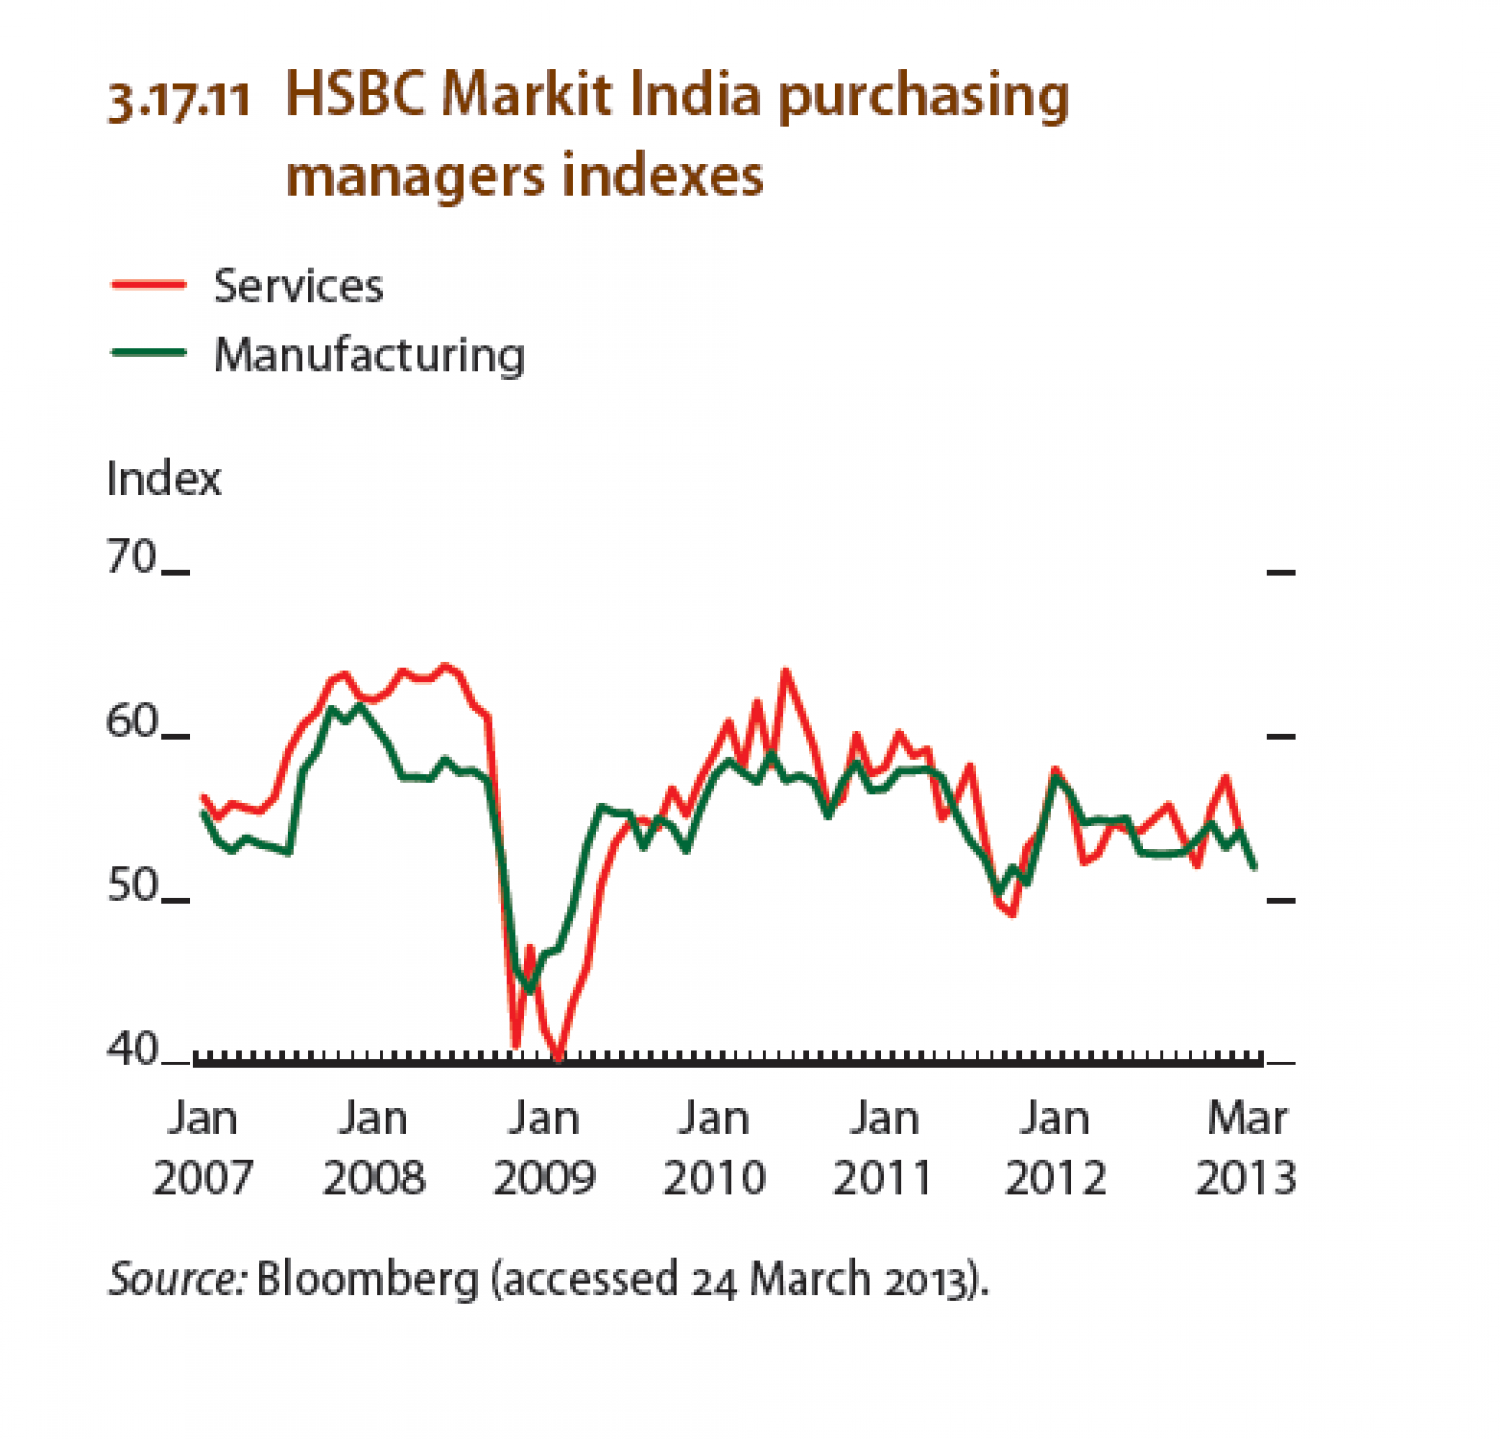 The Manufacturing Purchasing Managers' Index (PMI) is a diffusion index incorporating survey results provided by manufacturing firms throughout the country. A reading above fifty suggests the manufacturing sector is expanding, while a reading below fifty suggests the manufacturing sector is in contraction.